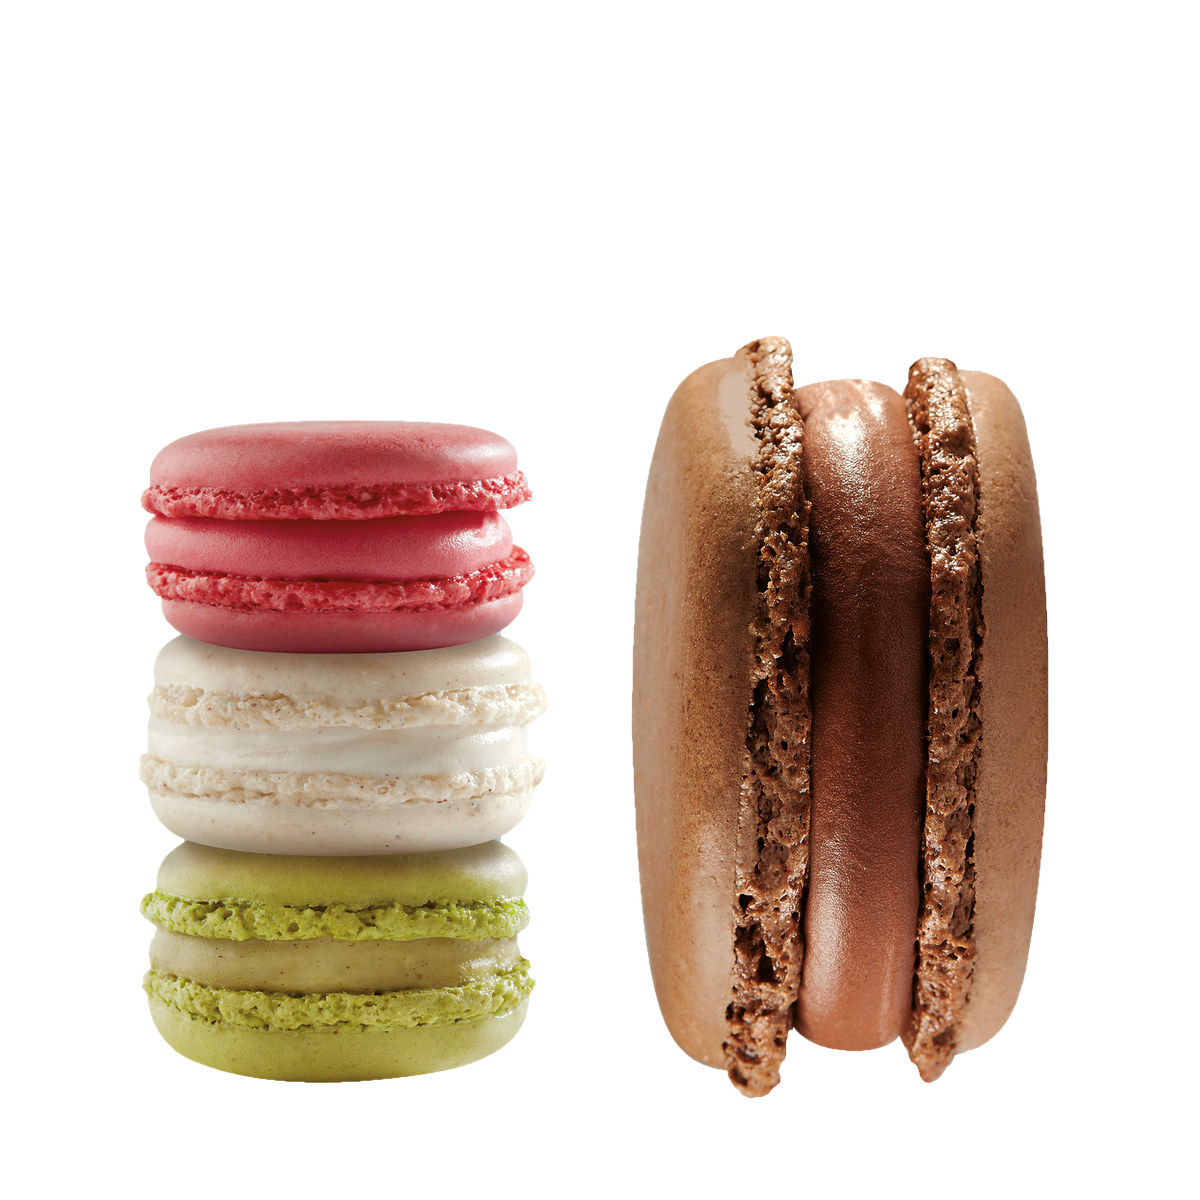 Three macarons are in a vertical stack (one green, one white, one pink), and one large chocolate macaron stands on its end next to them. All the macarons are isolated on a gray background.